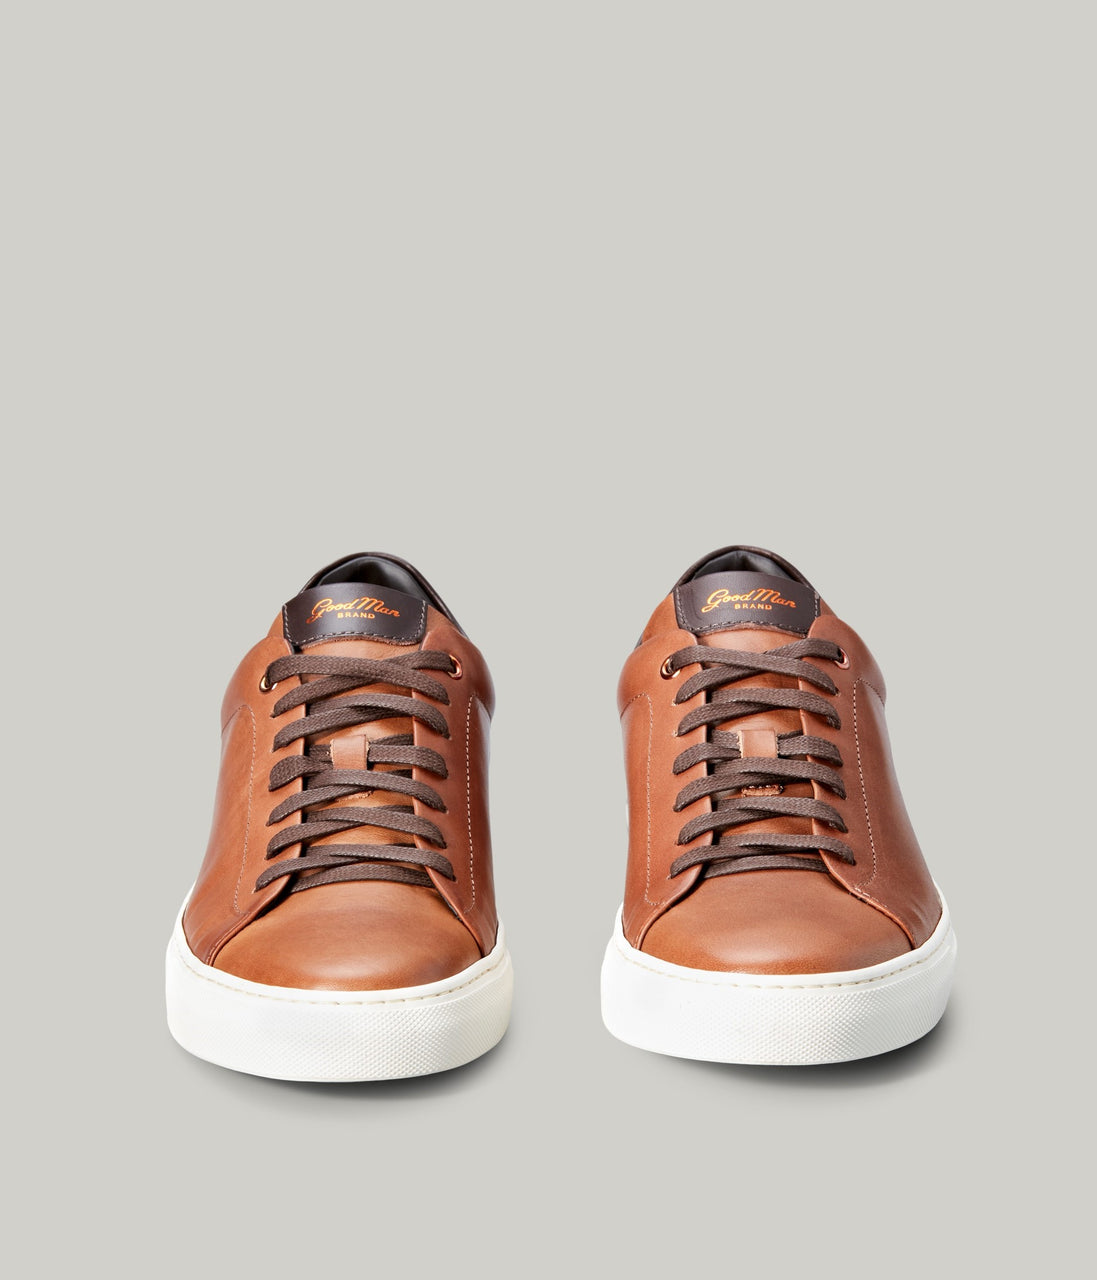 Legend Lo Top Sneaker - Dark Vachetta - Good Man Brand - Legend Lo Top Sneaker - Dark Vachetta